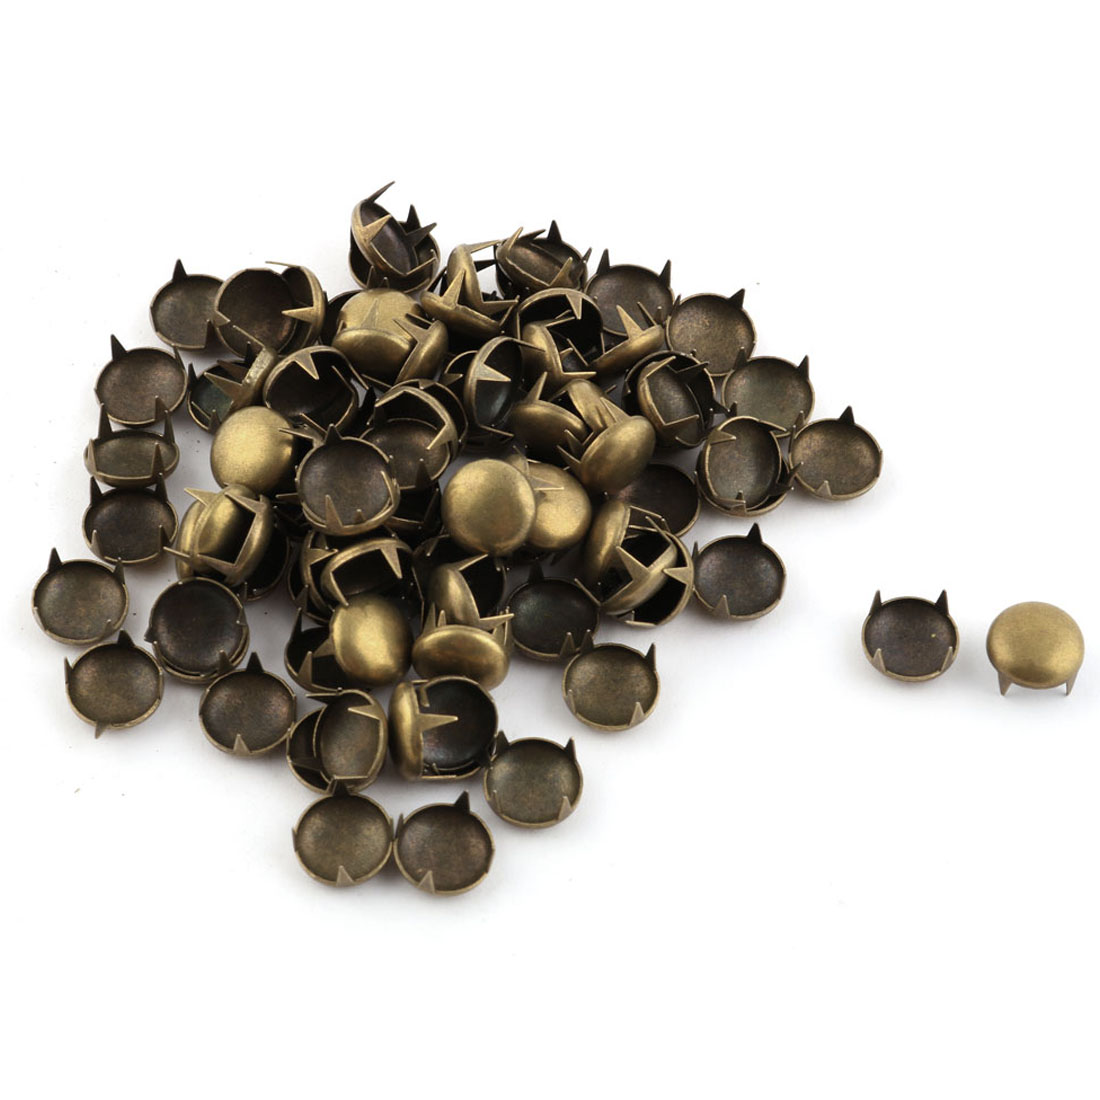 Metal Round Shaped Head DIY Rivet Studs Bronze Tone 10mm 100pcs for Clothing Bag